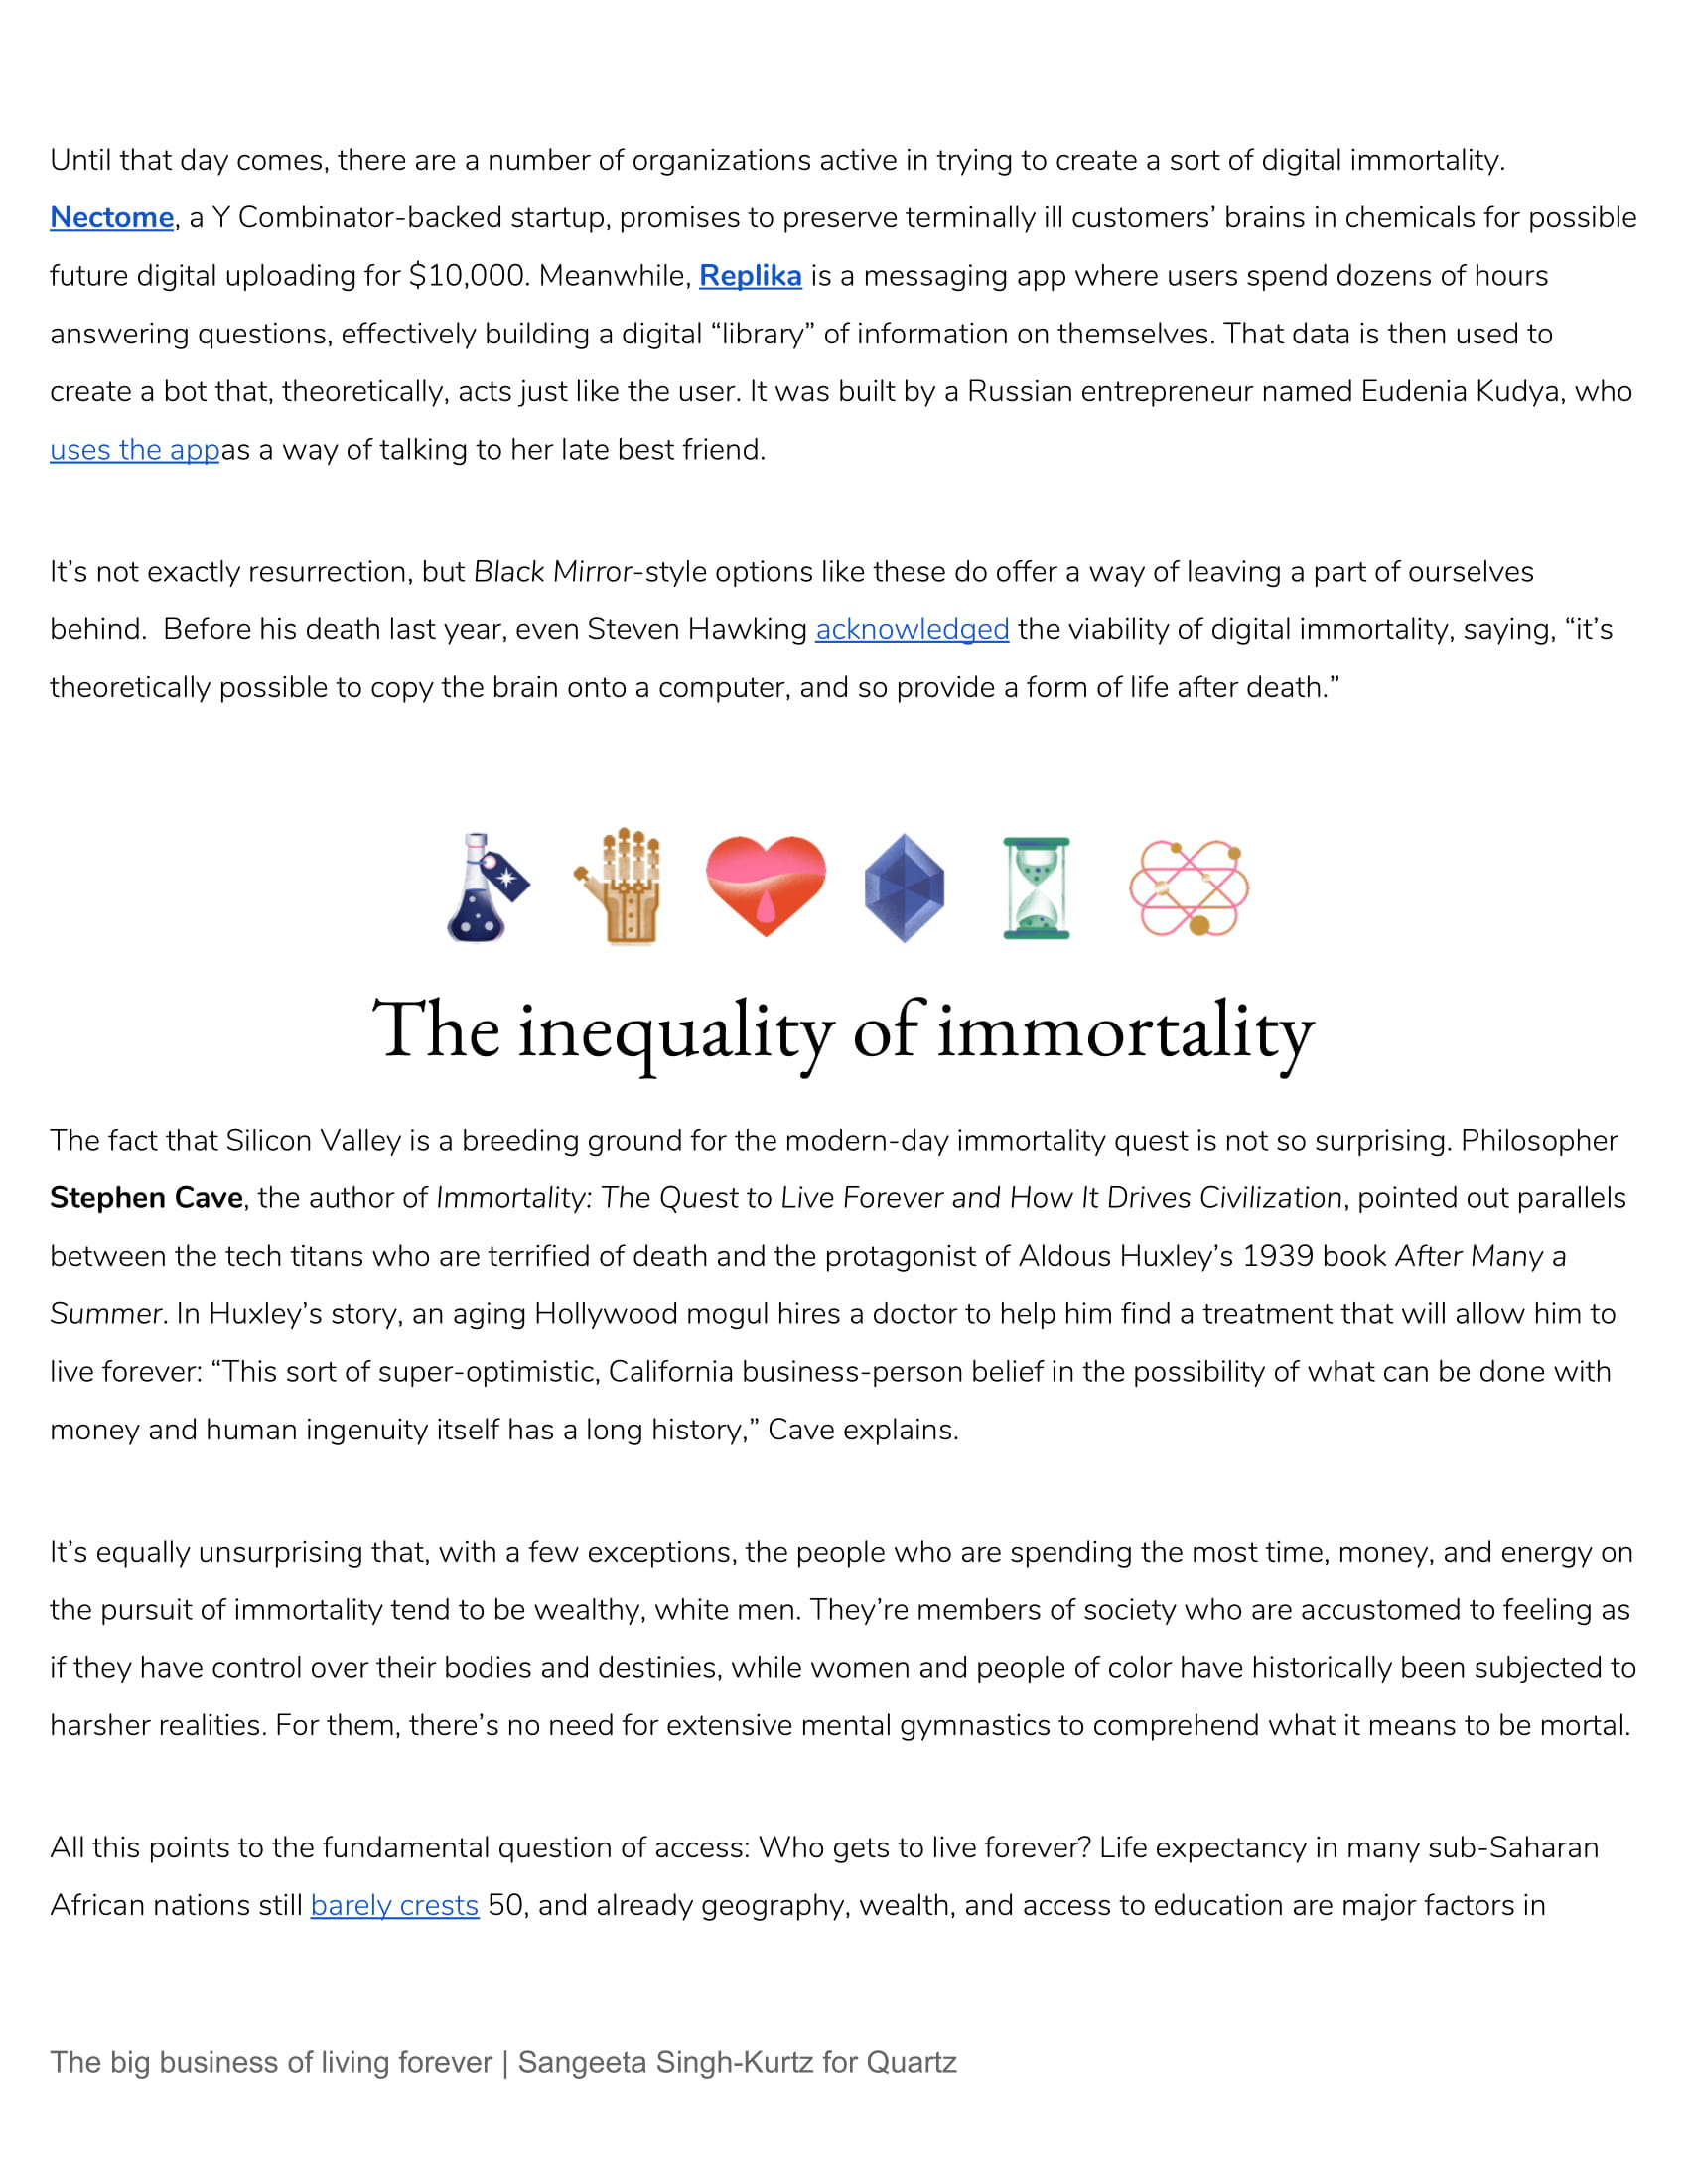 The Business of Immortality_SangeetaSK-18.jpg